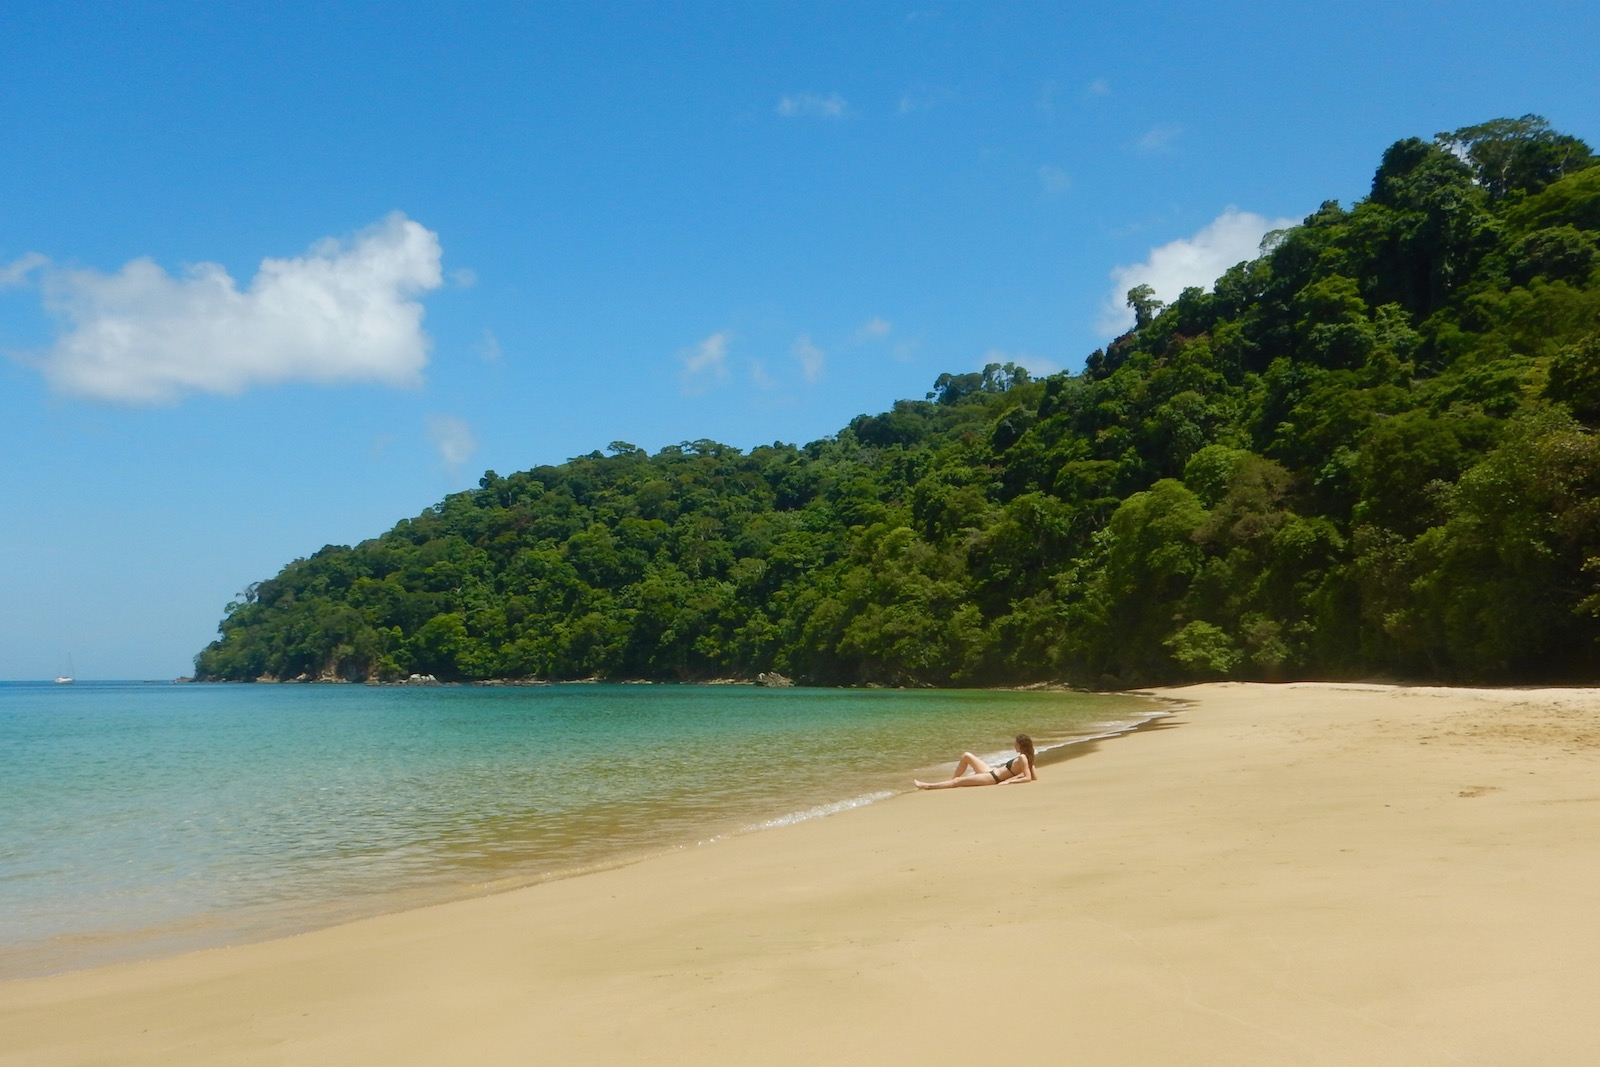 Travel Wiser Trinidad and Tobago beaches